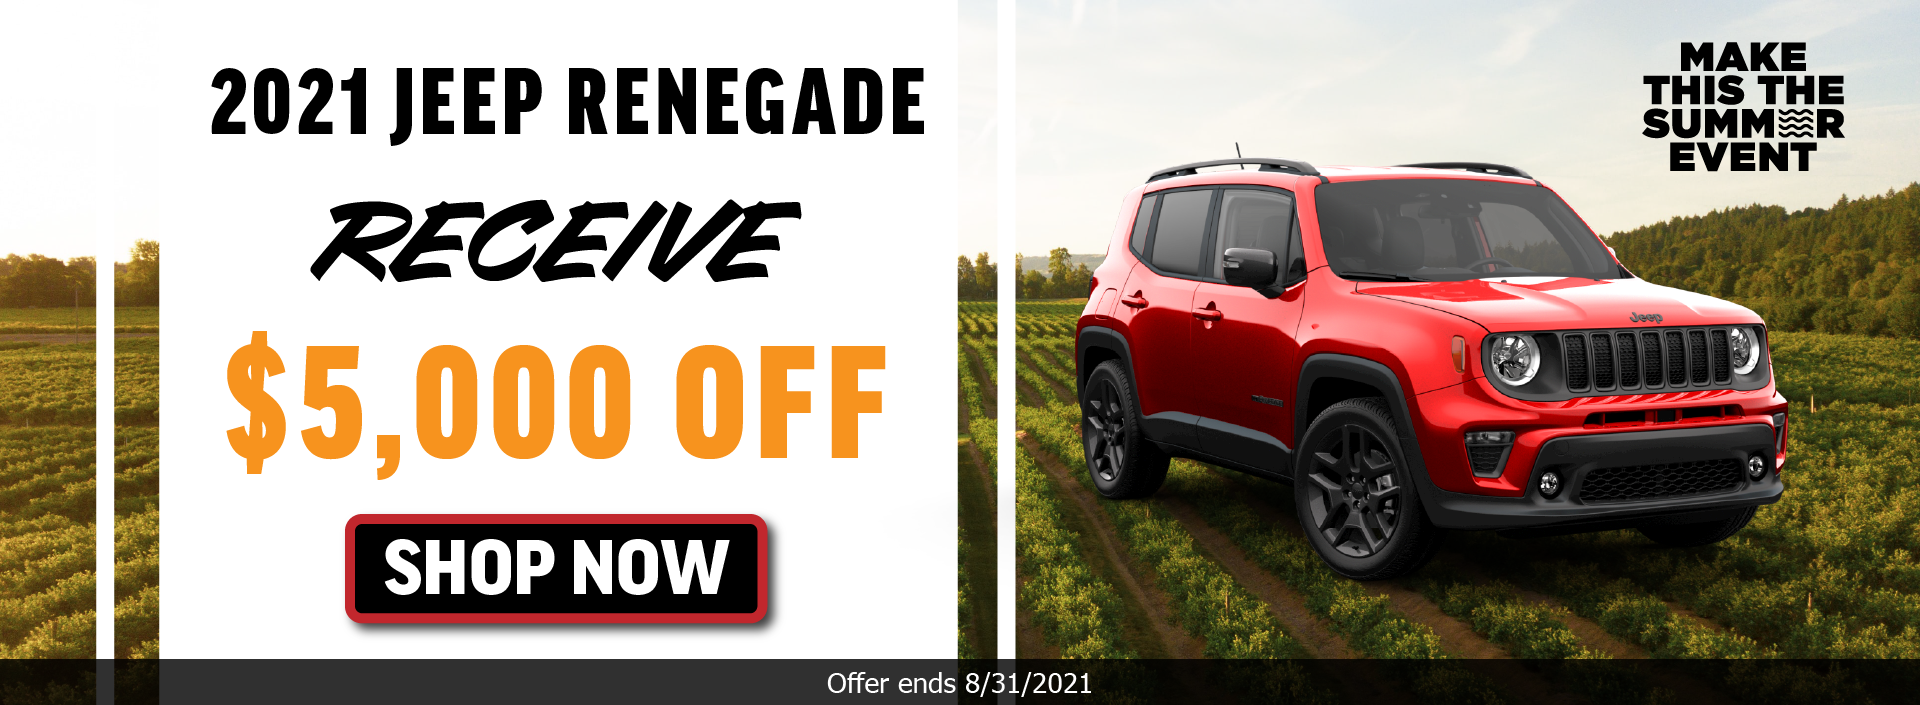 2021 Jeep Renegade_August